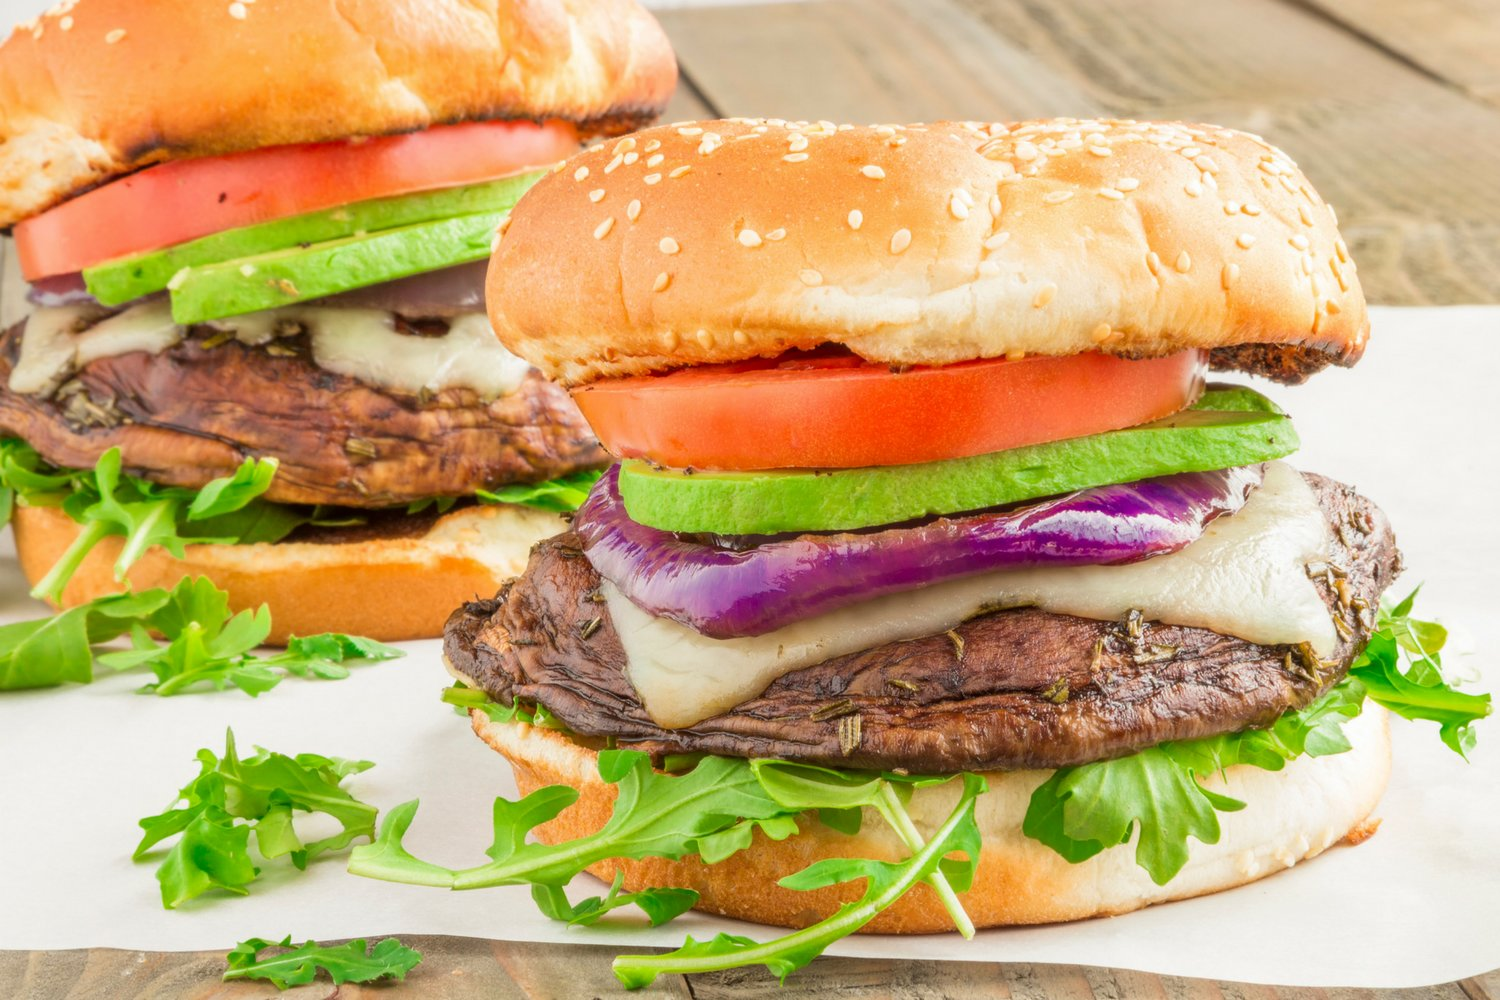 Grilled Portobello Burgers with Swiss Cheese and Avocado